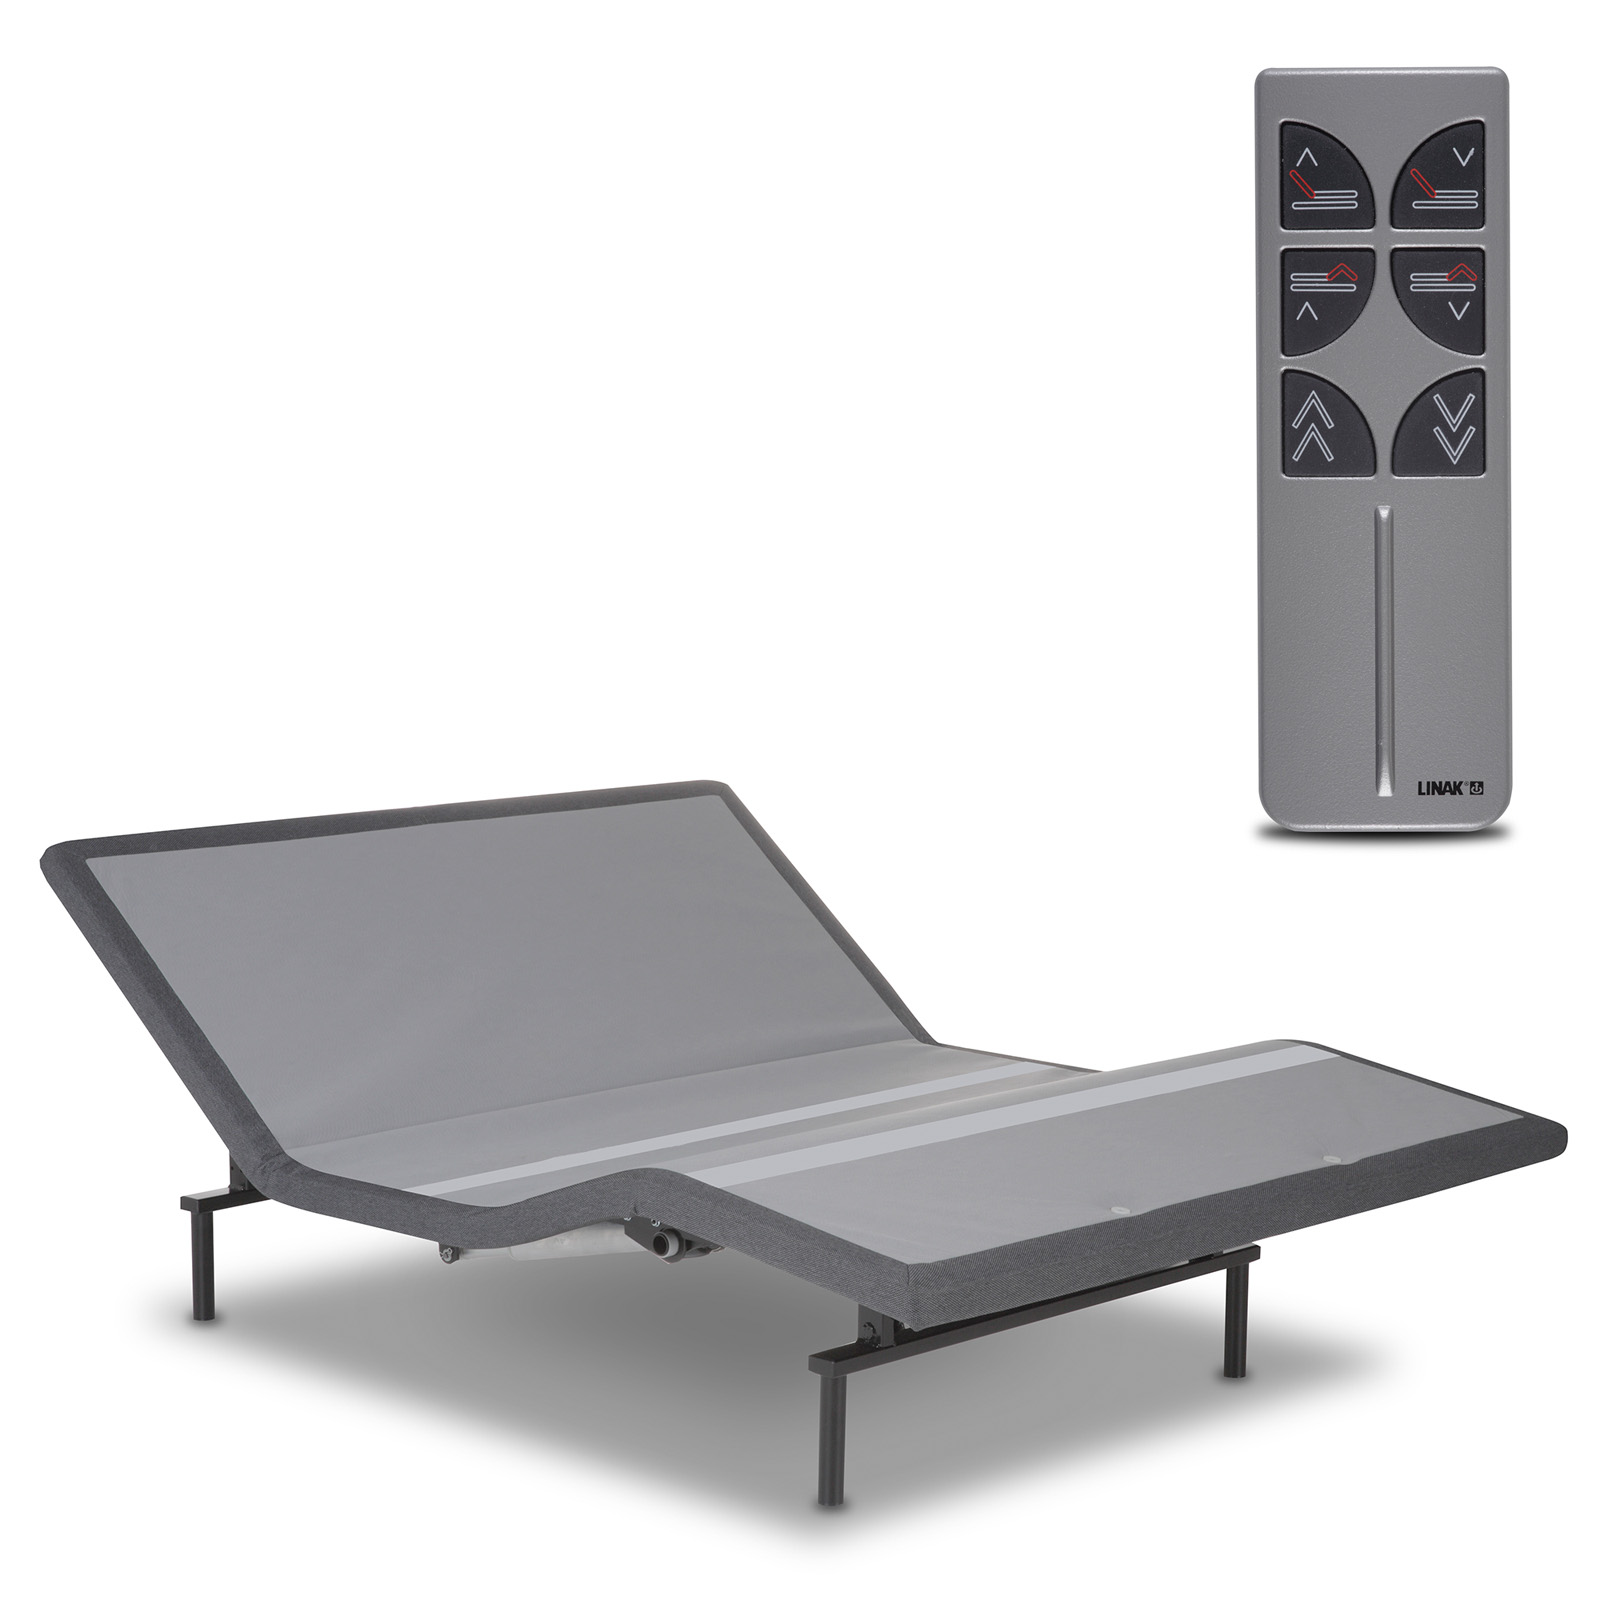 classic brands adjustable comfort adjustable bed base with wireless remote control hayneedle